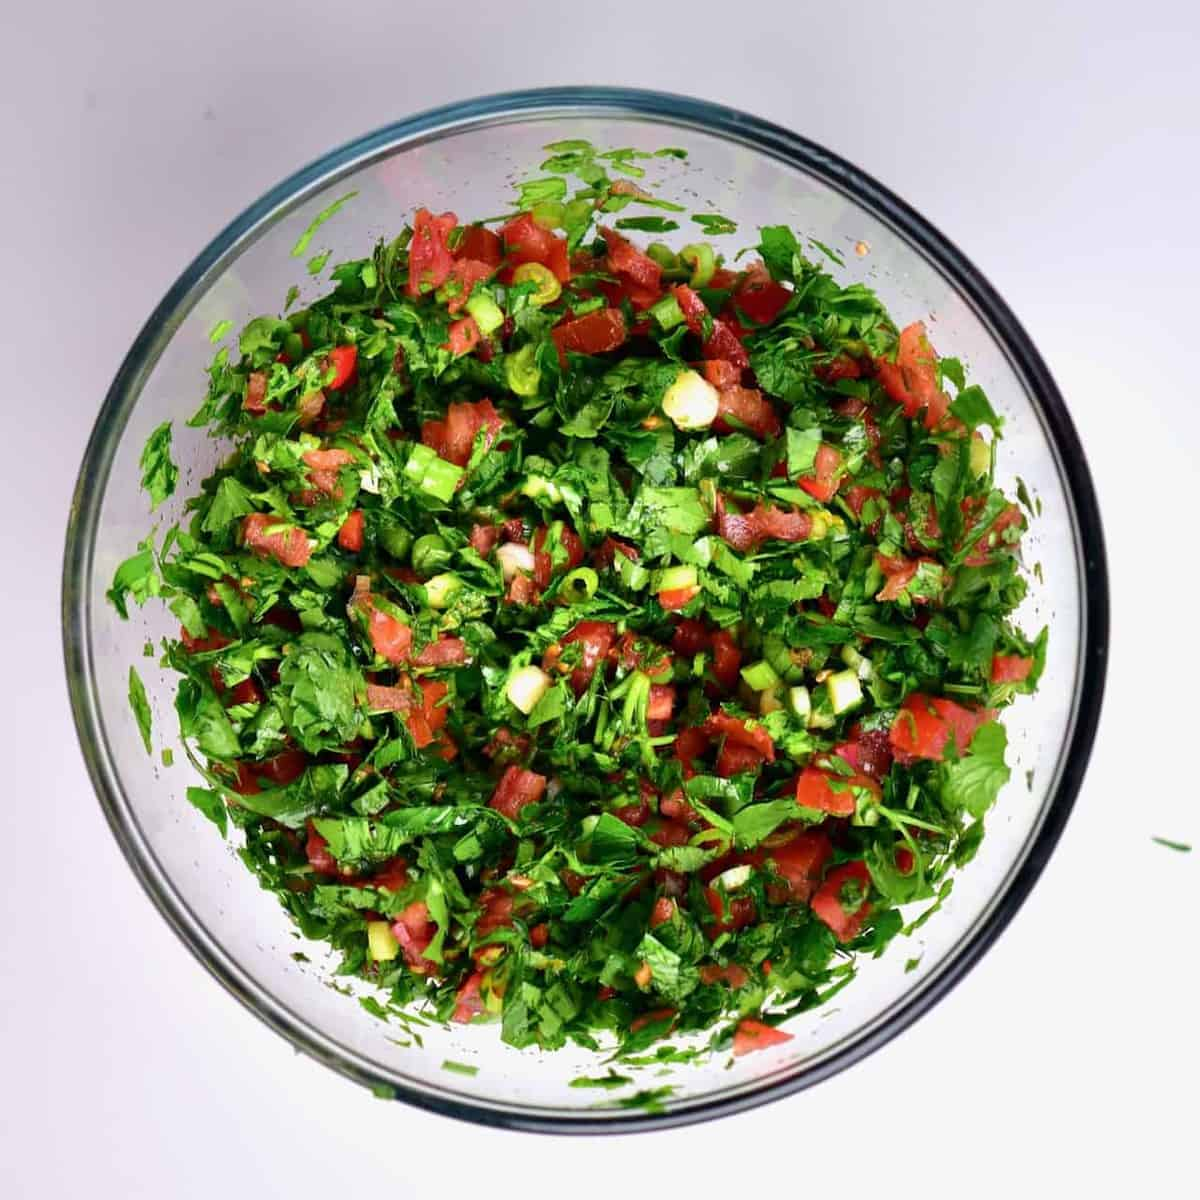 In a bowl, mixed parsley, mint, green onion, chilli and tomatoes for making a Tabbouleh/tabouli salad